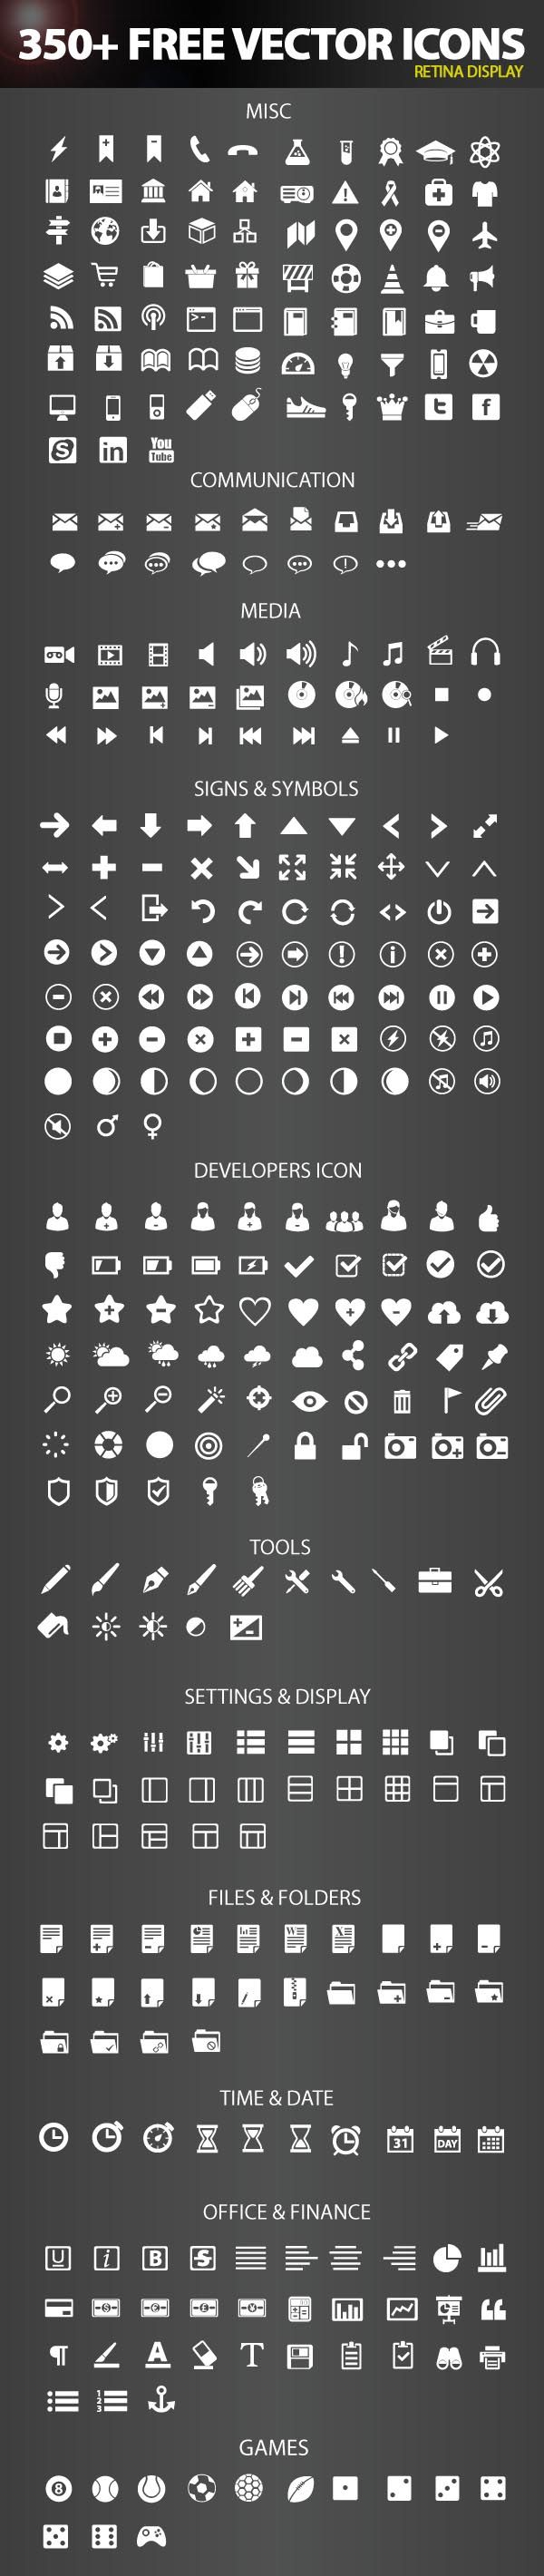 Free Icon Pack 20 Retina Display Ready Icons   Six Revisions ...